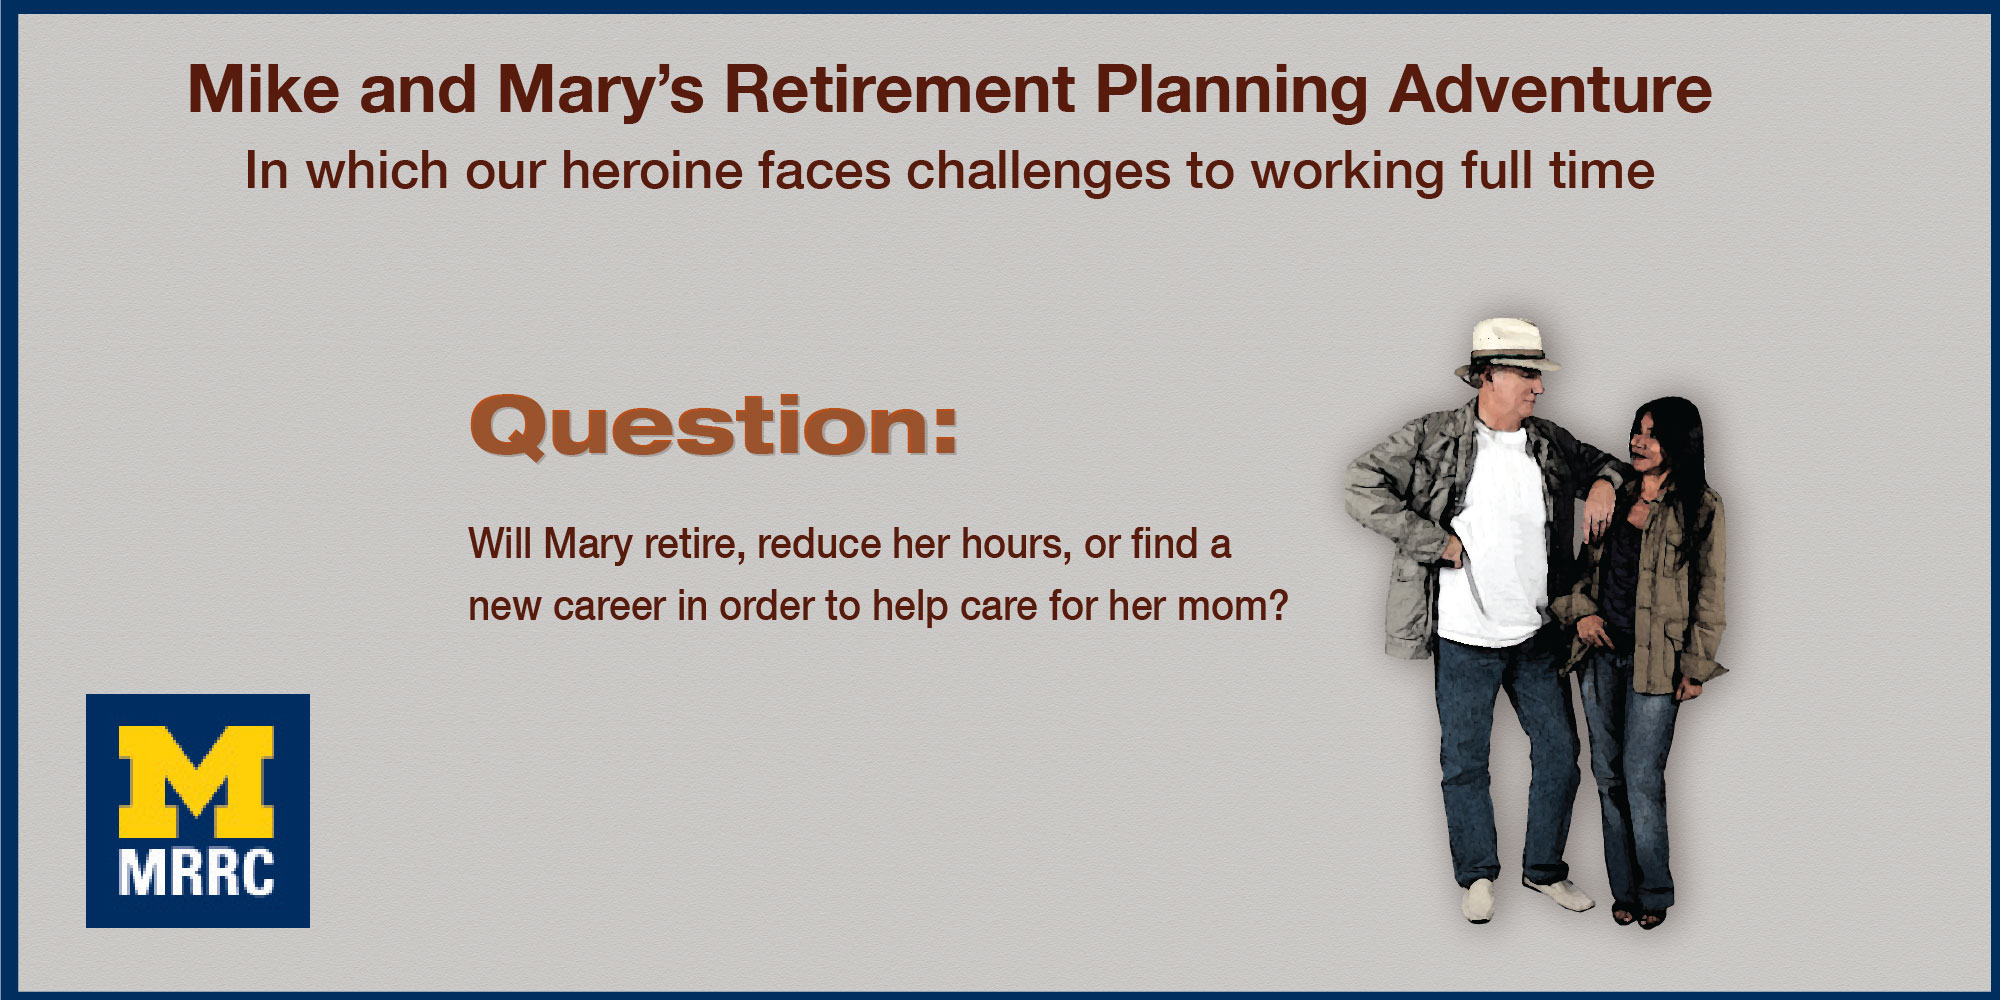 Question: Will Mary retire, reduce her hours, or find a new career in order to help care for her mom?